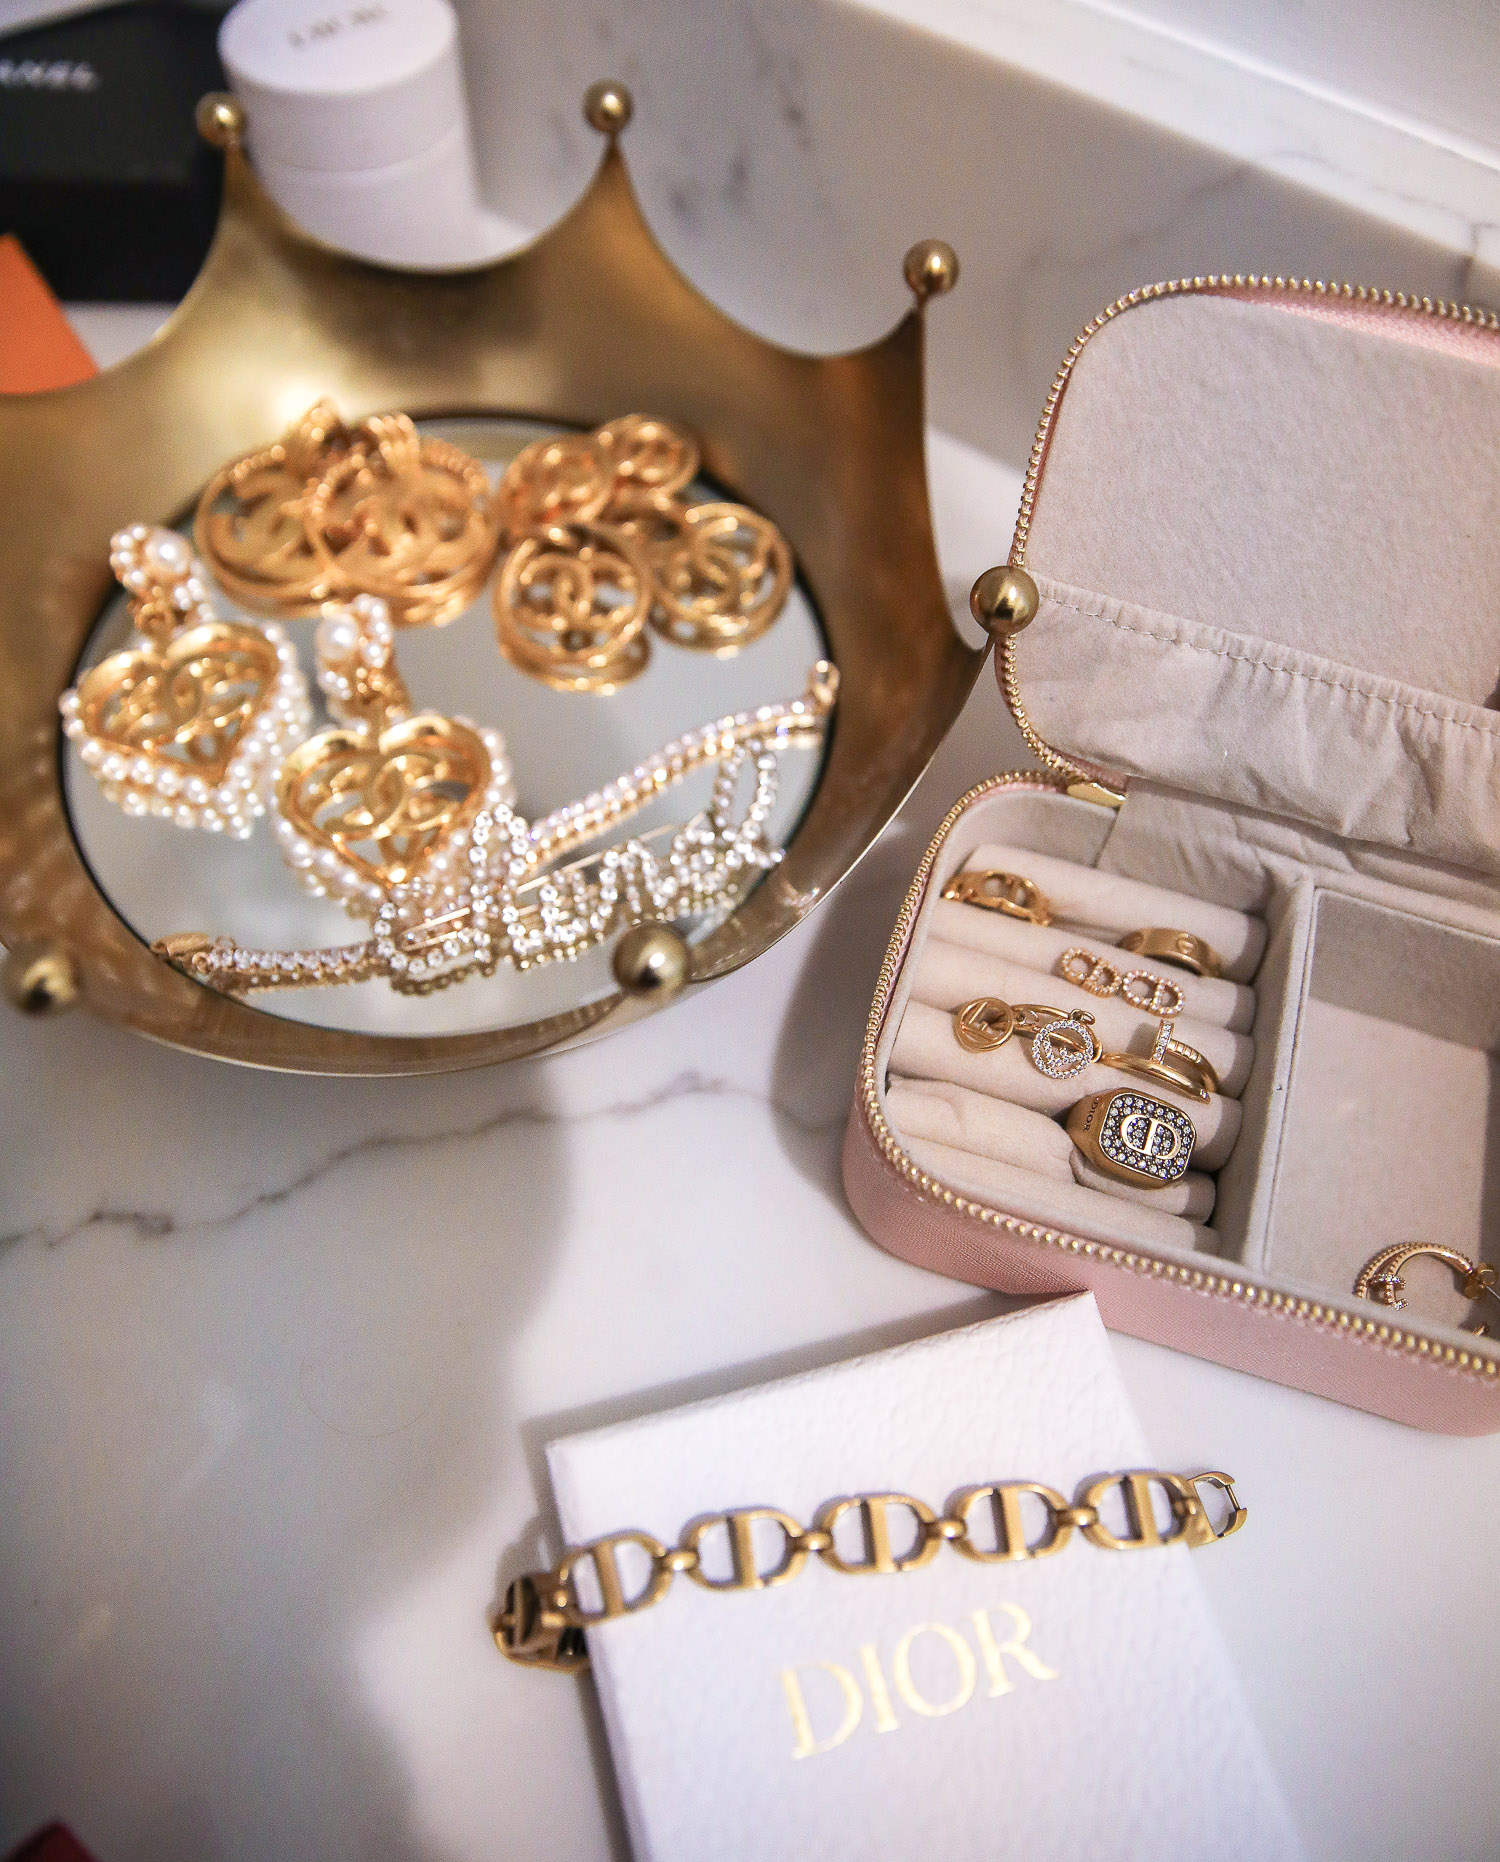 jewelry storage and organization, master bedroom decoration and design, designer jewelry storage | Nighttime Routine by popular US beauty blog, The Sweetest Thing: image of Chanel jewelry in a crown jewelry dish, a Dior bracelet, and Dior and Fendi rings in a pink jewelry case.